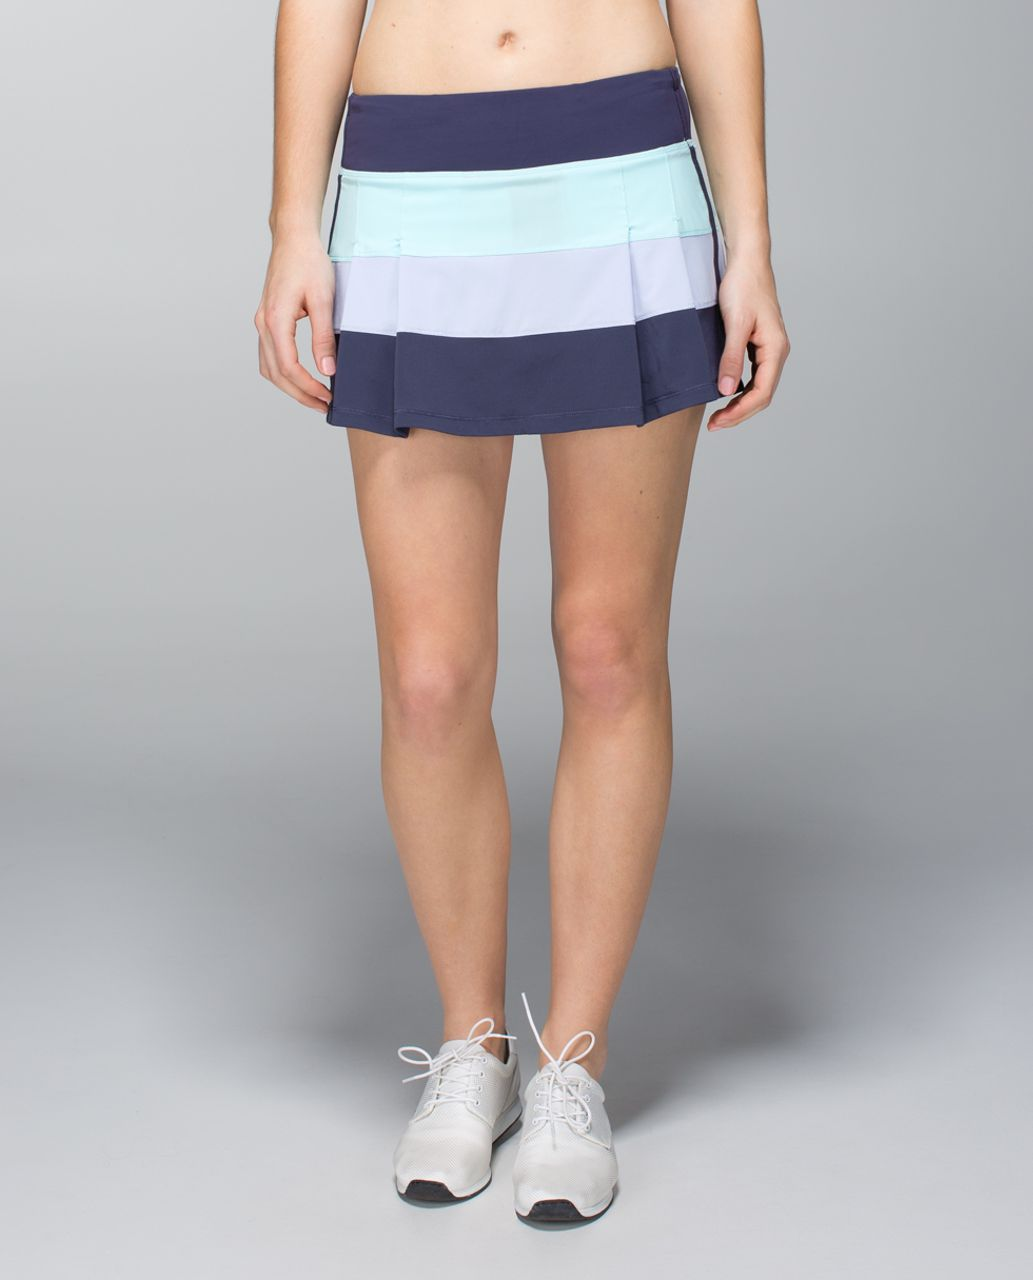 Lululemon Pace Rival Skirt *4-way Stretch (Regular) - Aquamarine / Cool Breeze / Cadet Blue